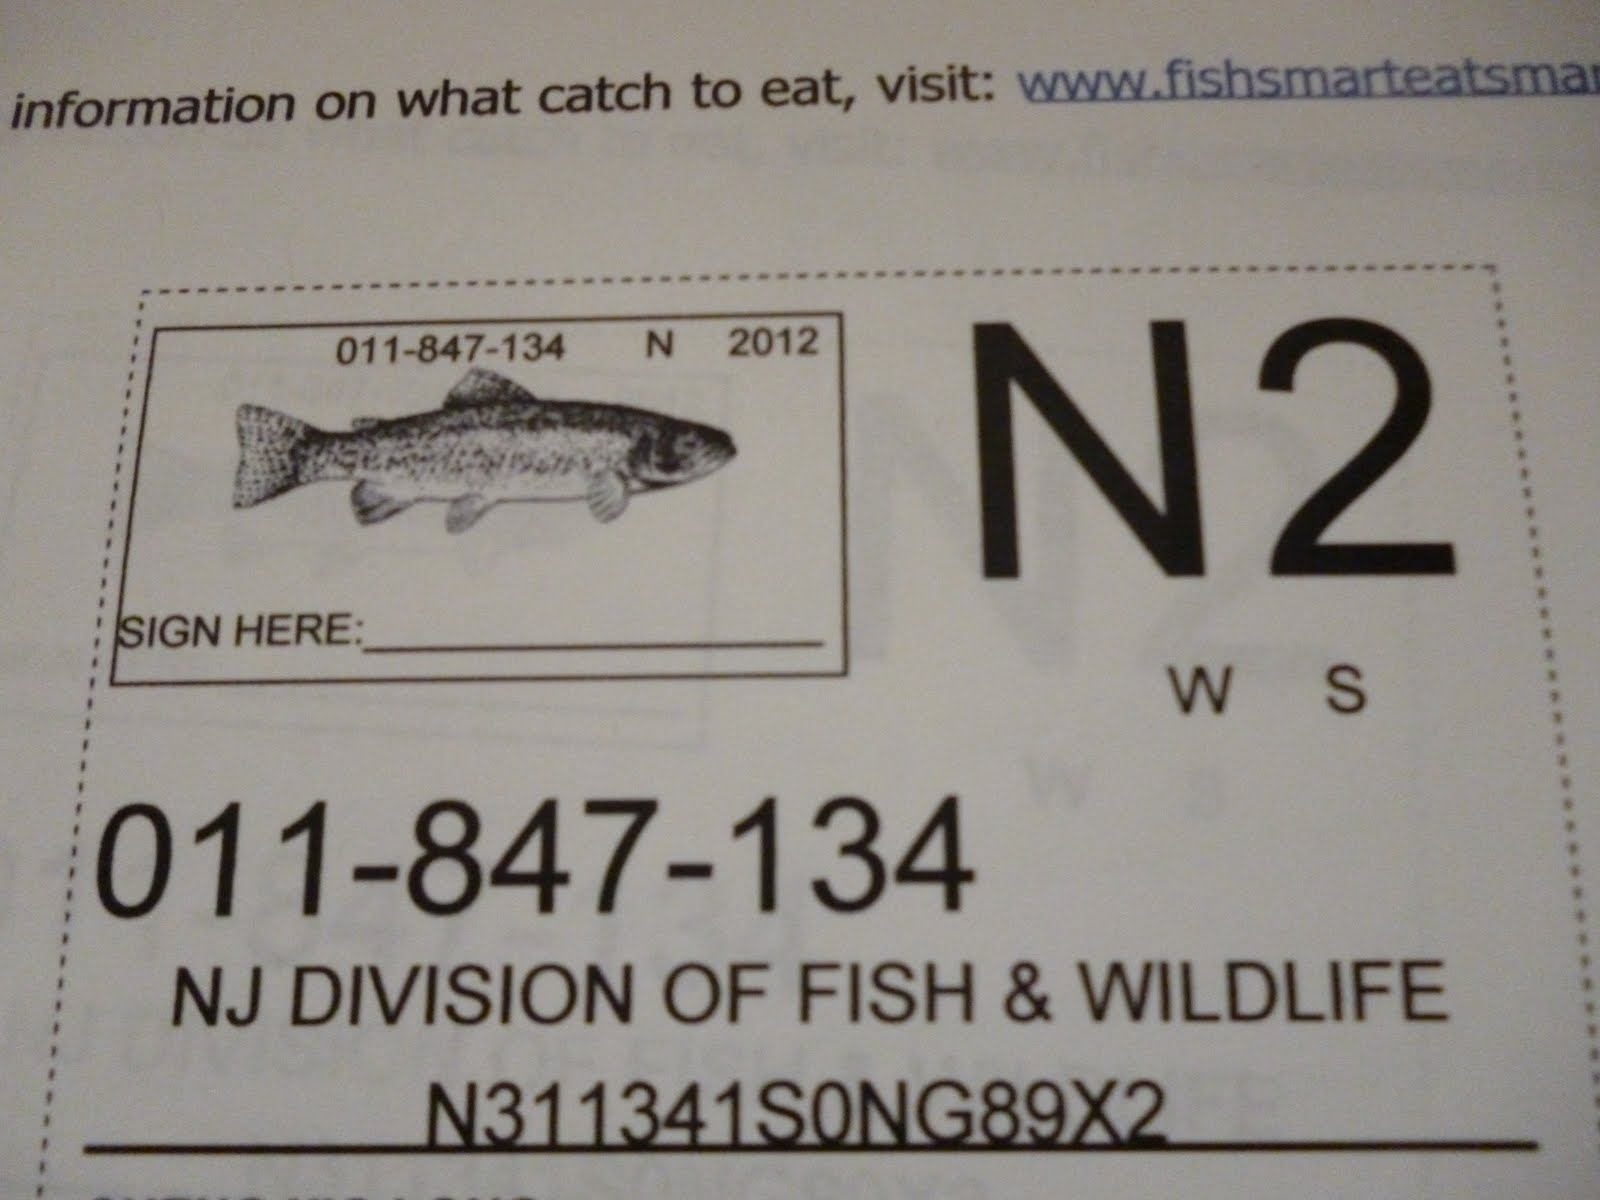 Extreme philly fishing cooper river at wallworth pond for Do you need a fishing license